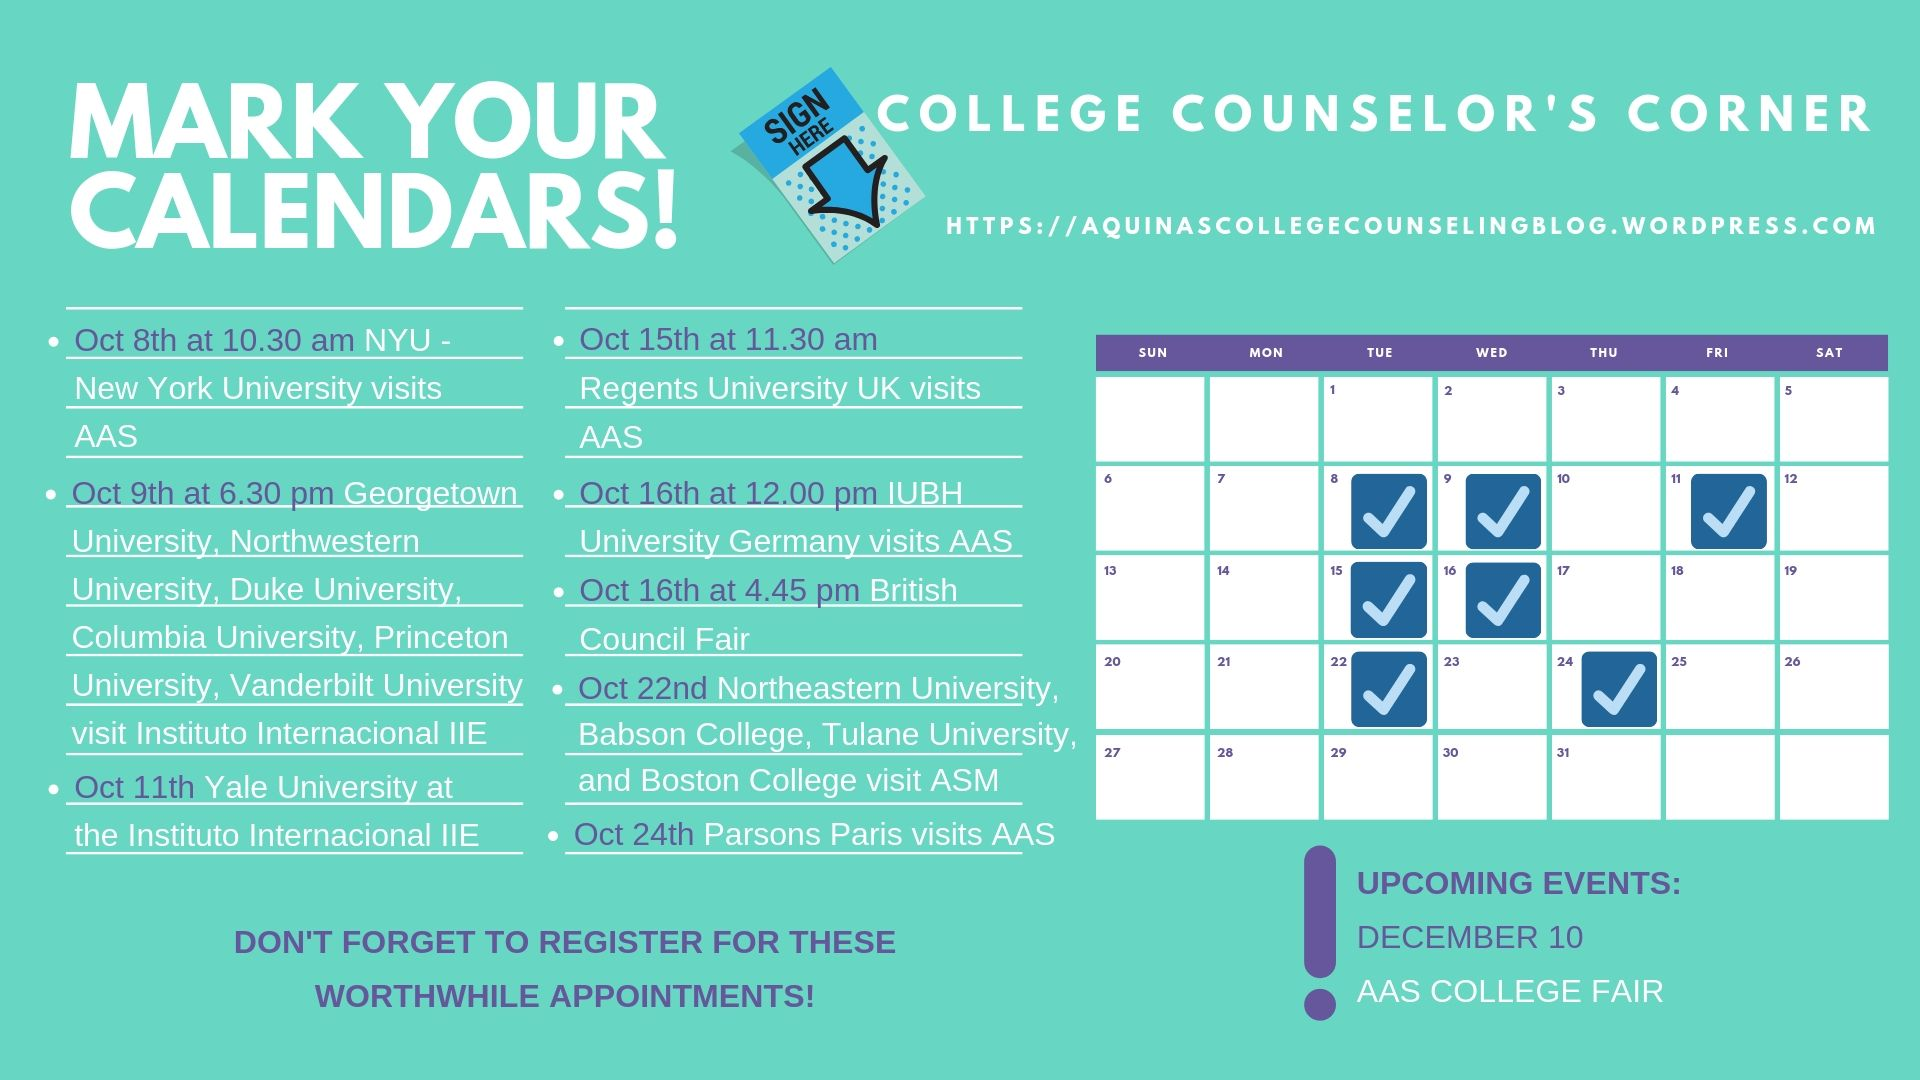 COLLEGE COUNSELOR'S CORNER